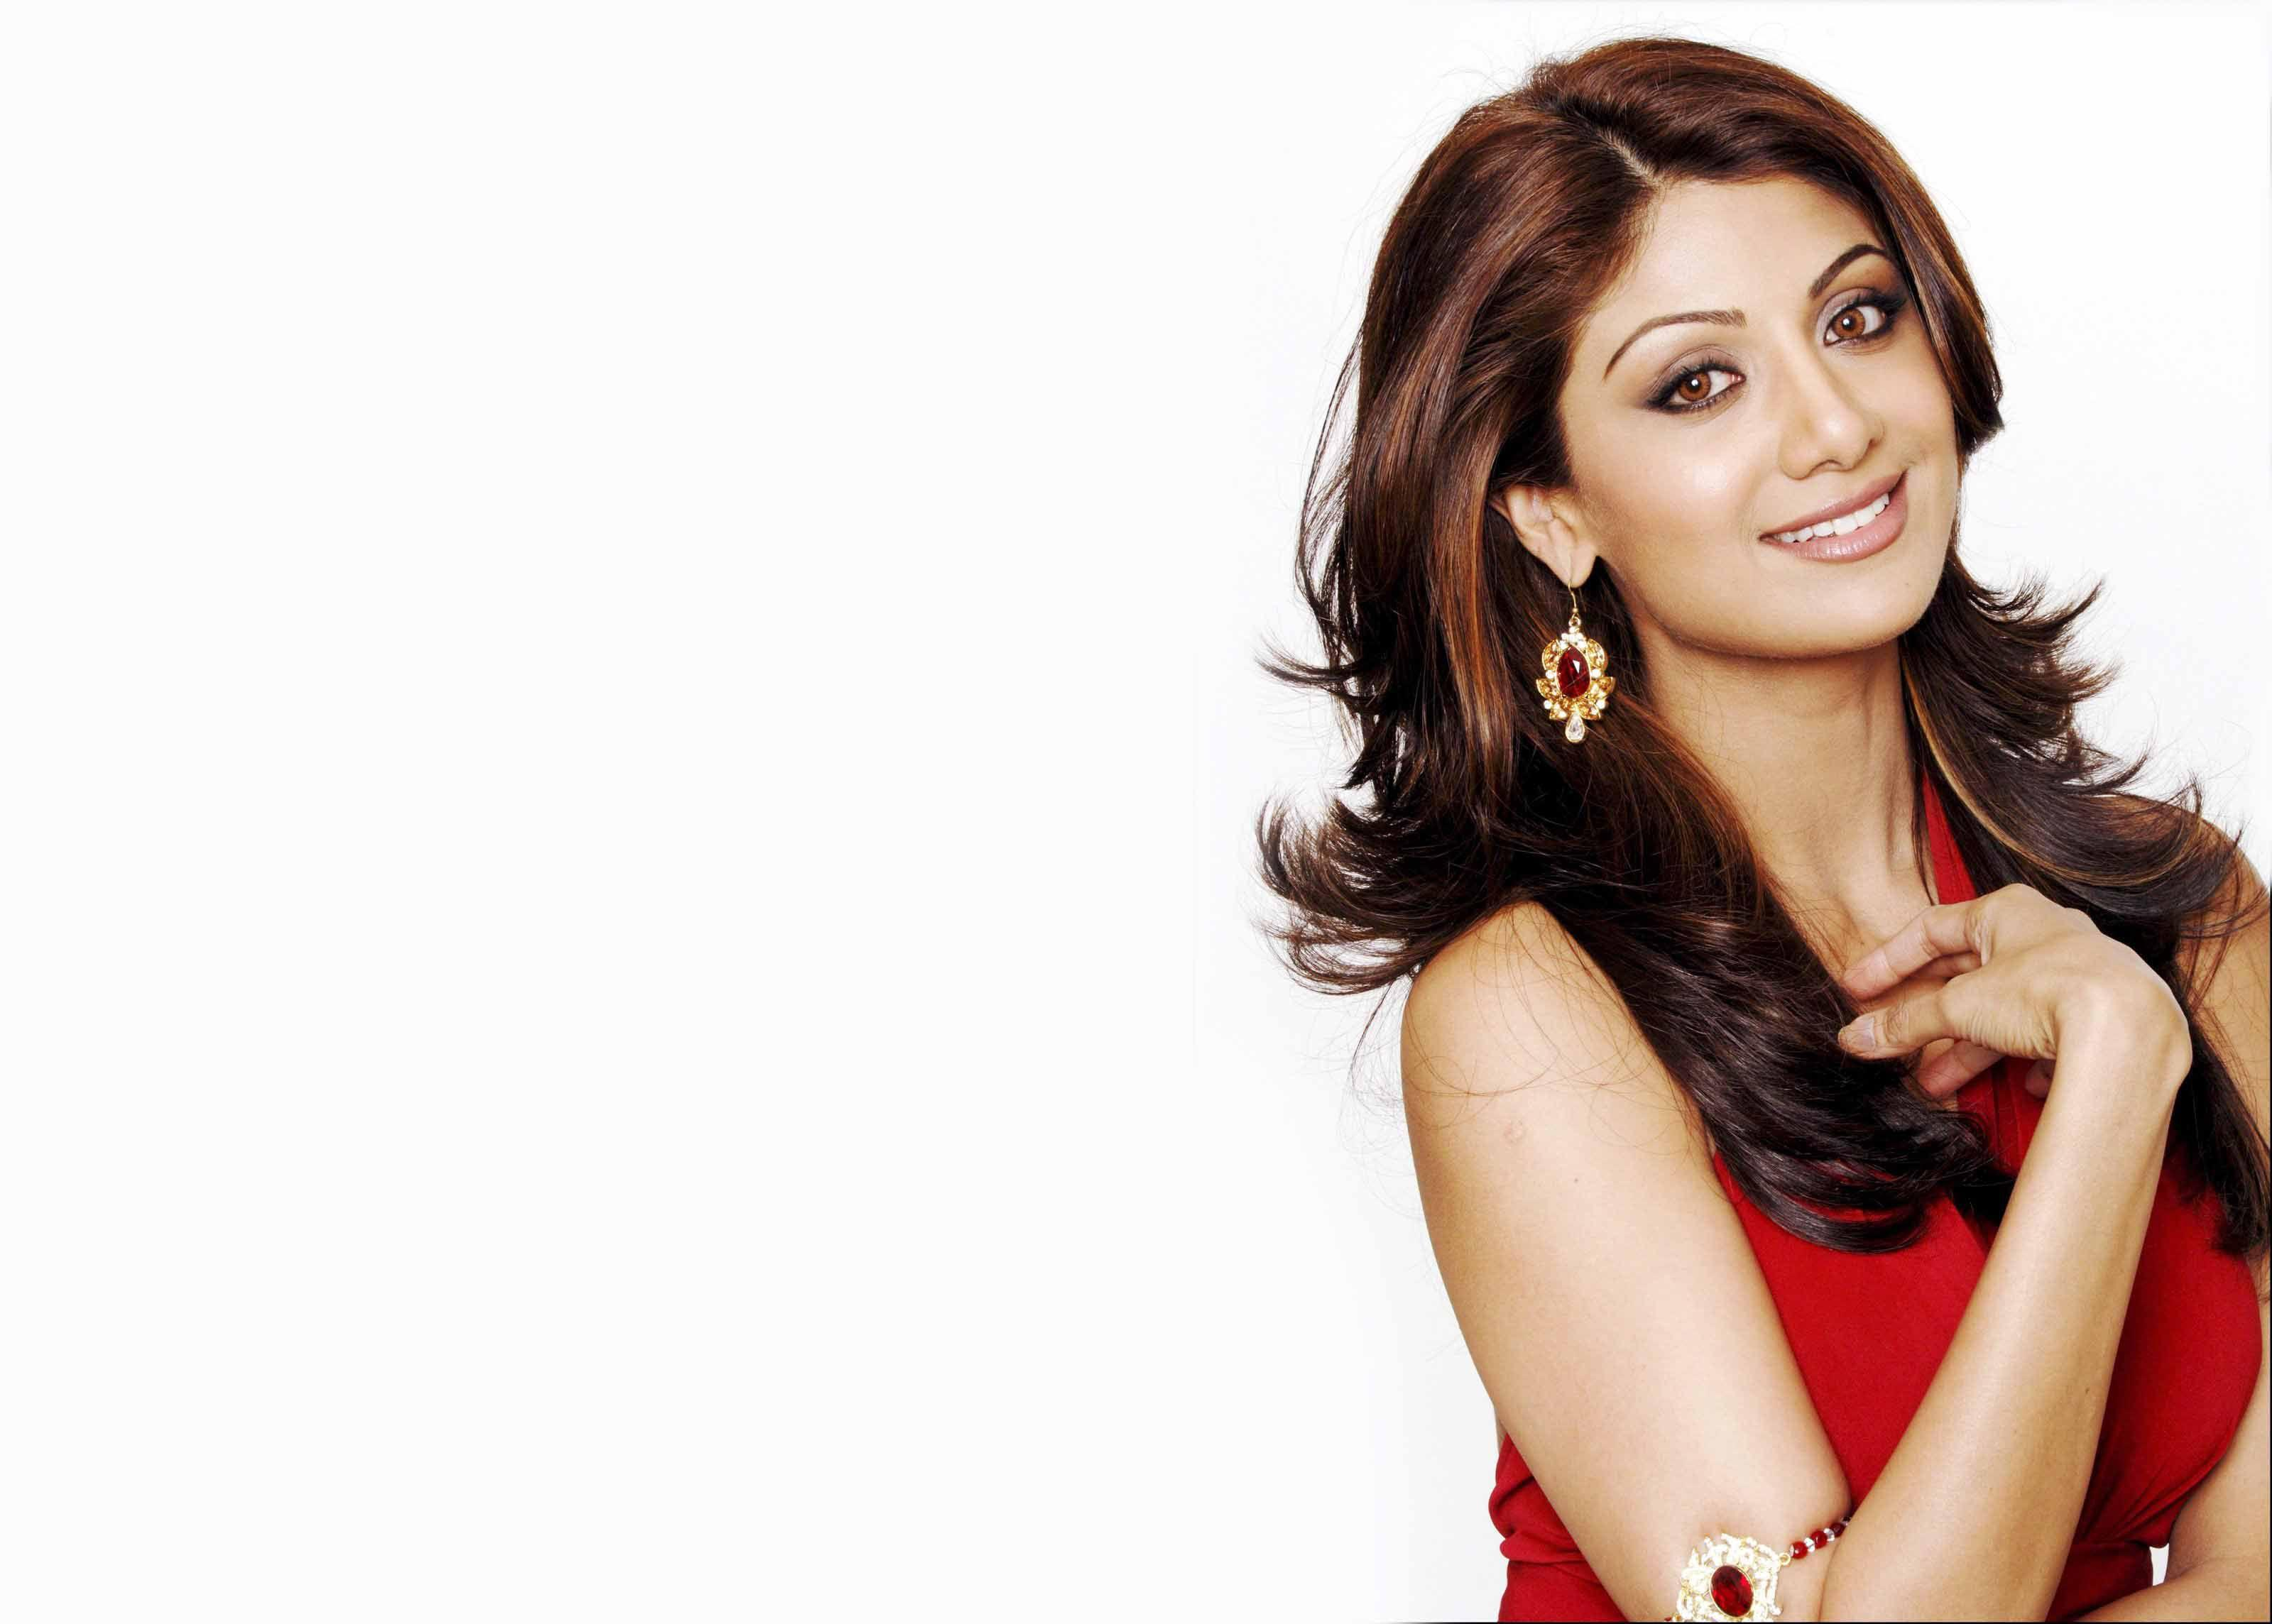 shilpa-shetty-virginity-foursome-free-sex-pics-and-movies